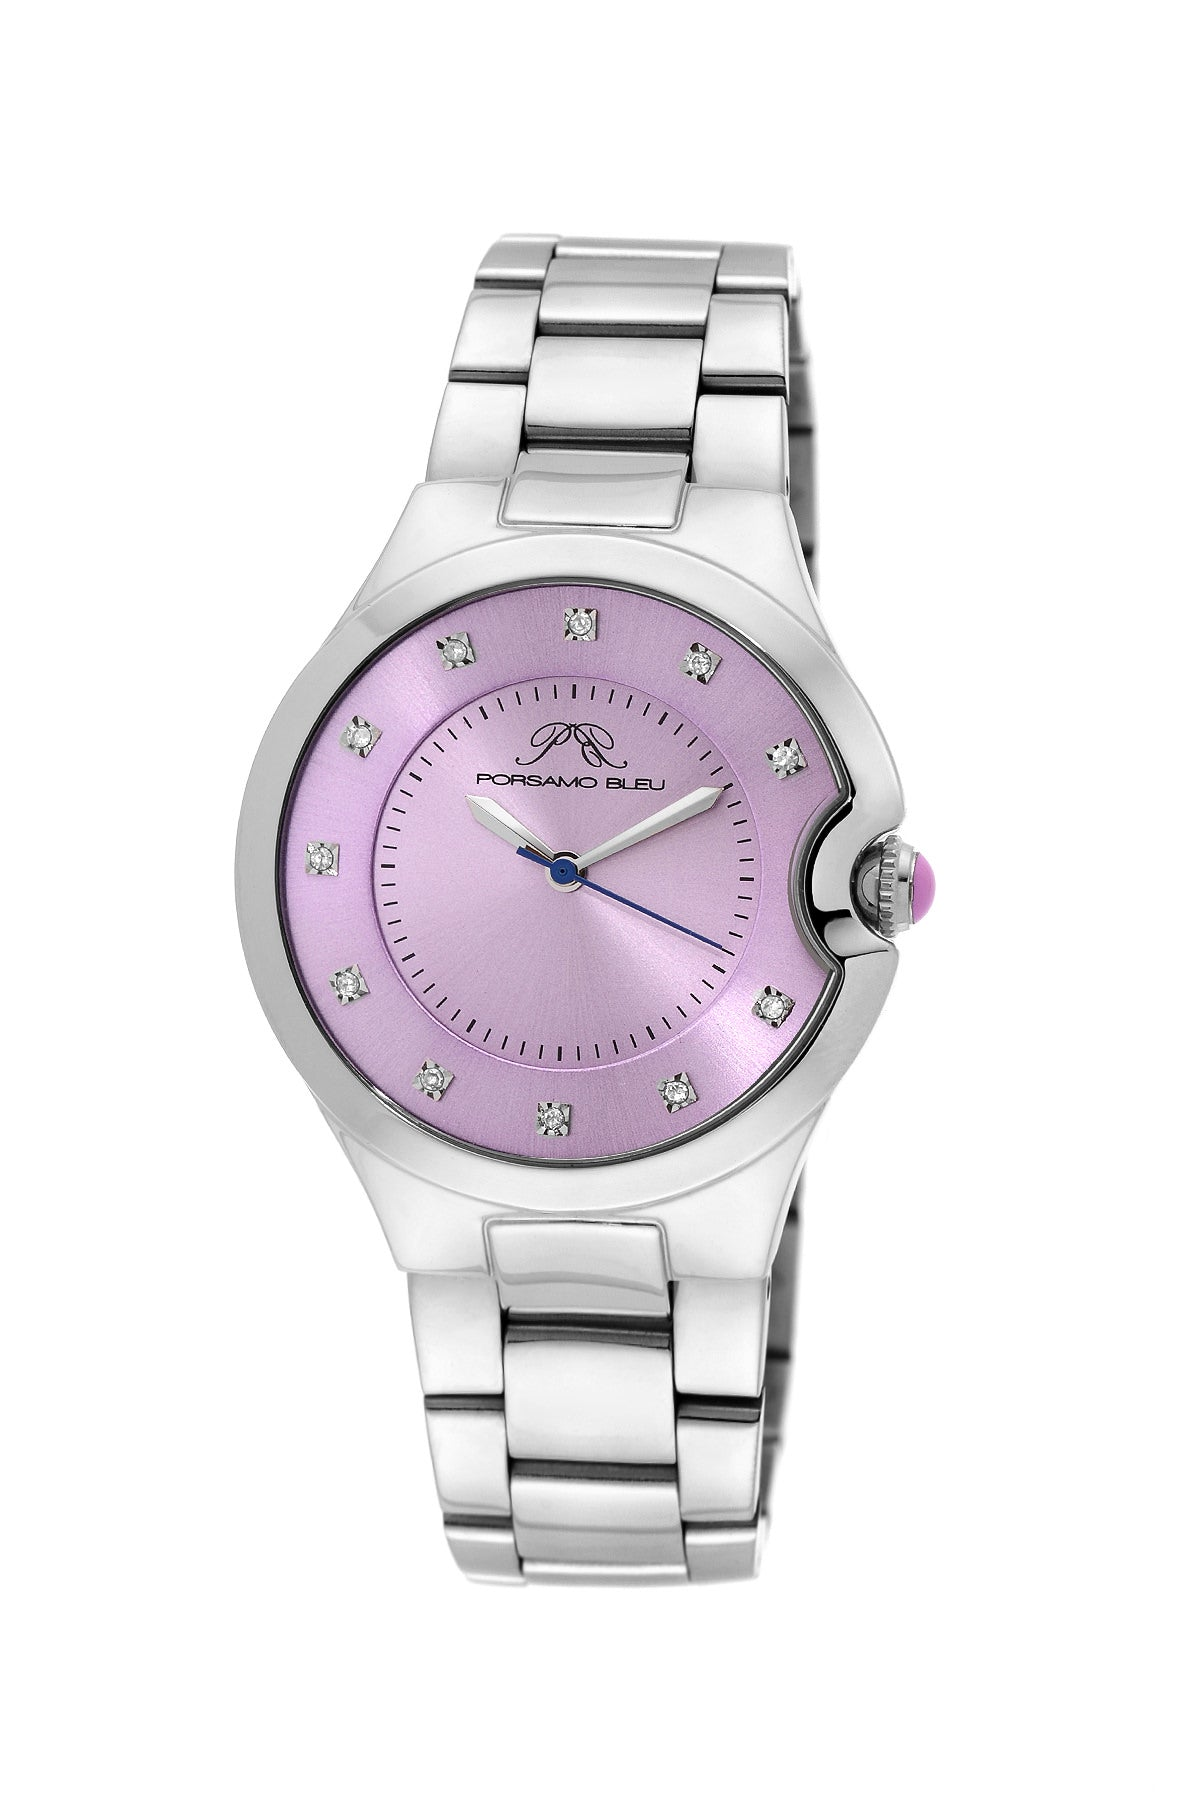 Porsamo Bleu Emilia luxury diamond women's stainless steel watch, silver, lilac 822BEMS